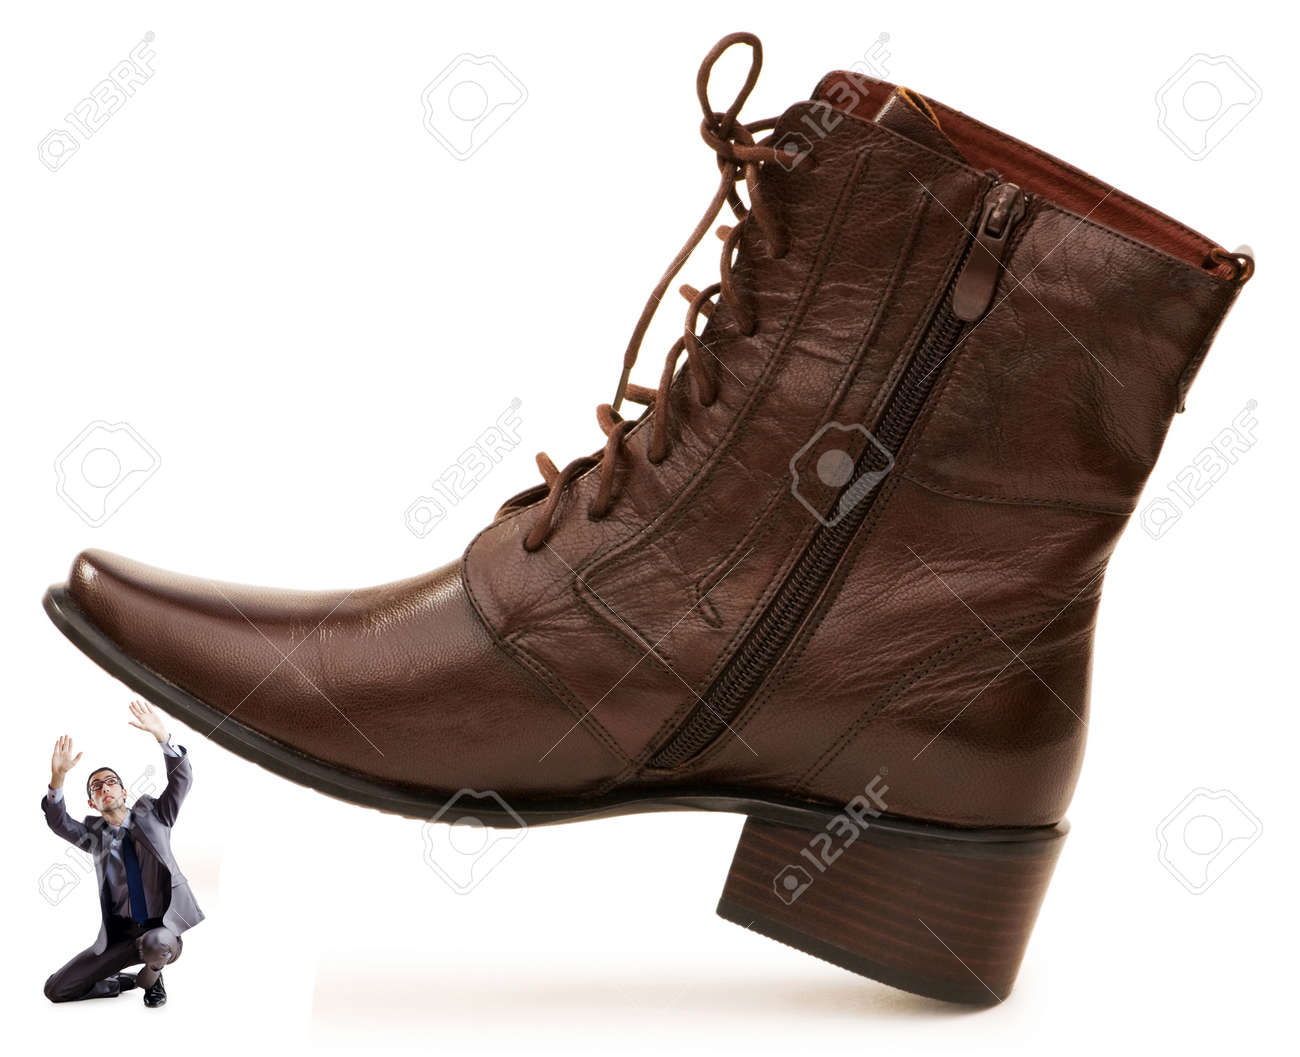 Woman domination concept with shoes and man Stock Photo - 12472464